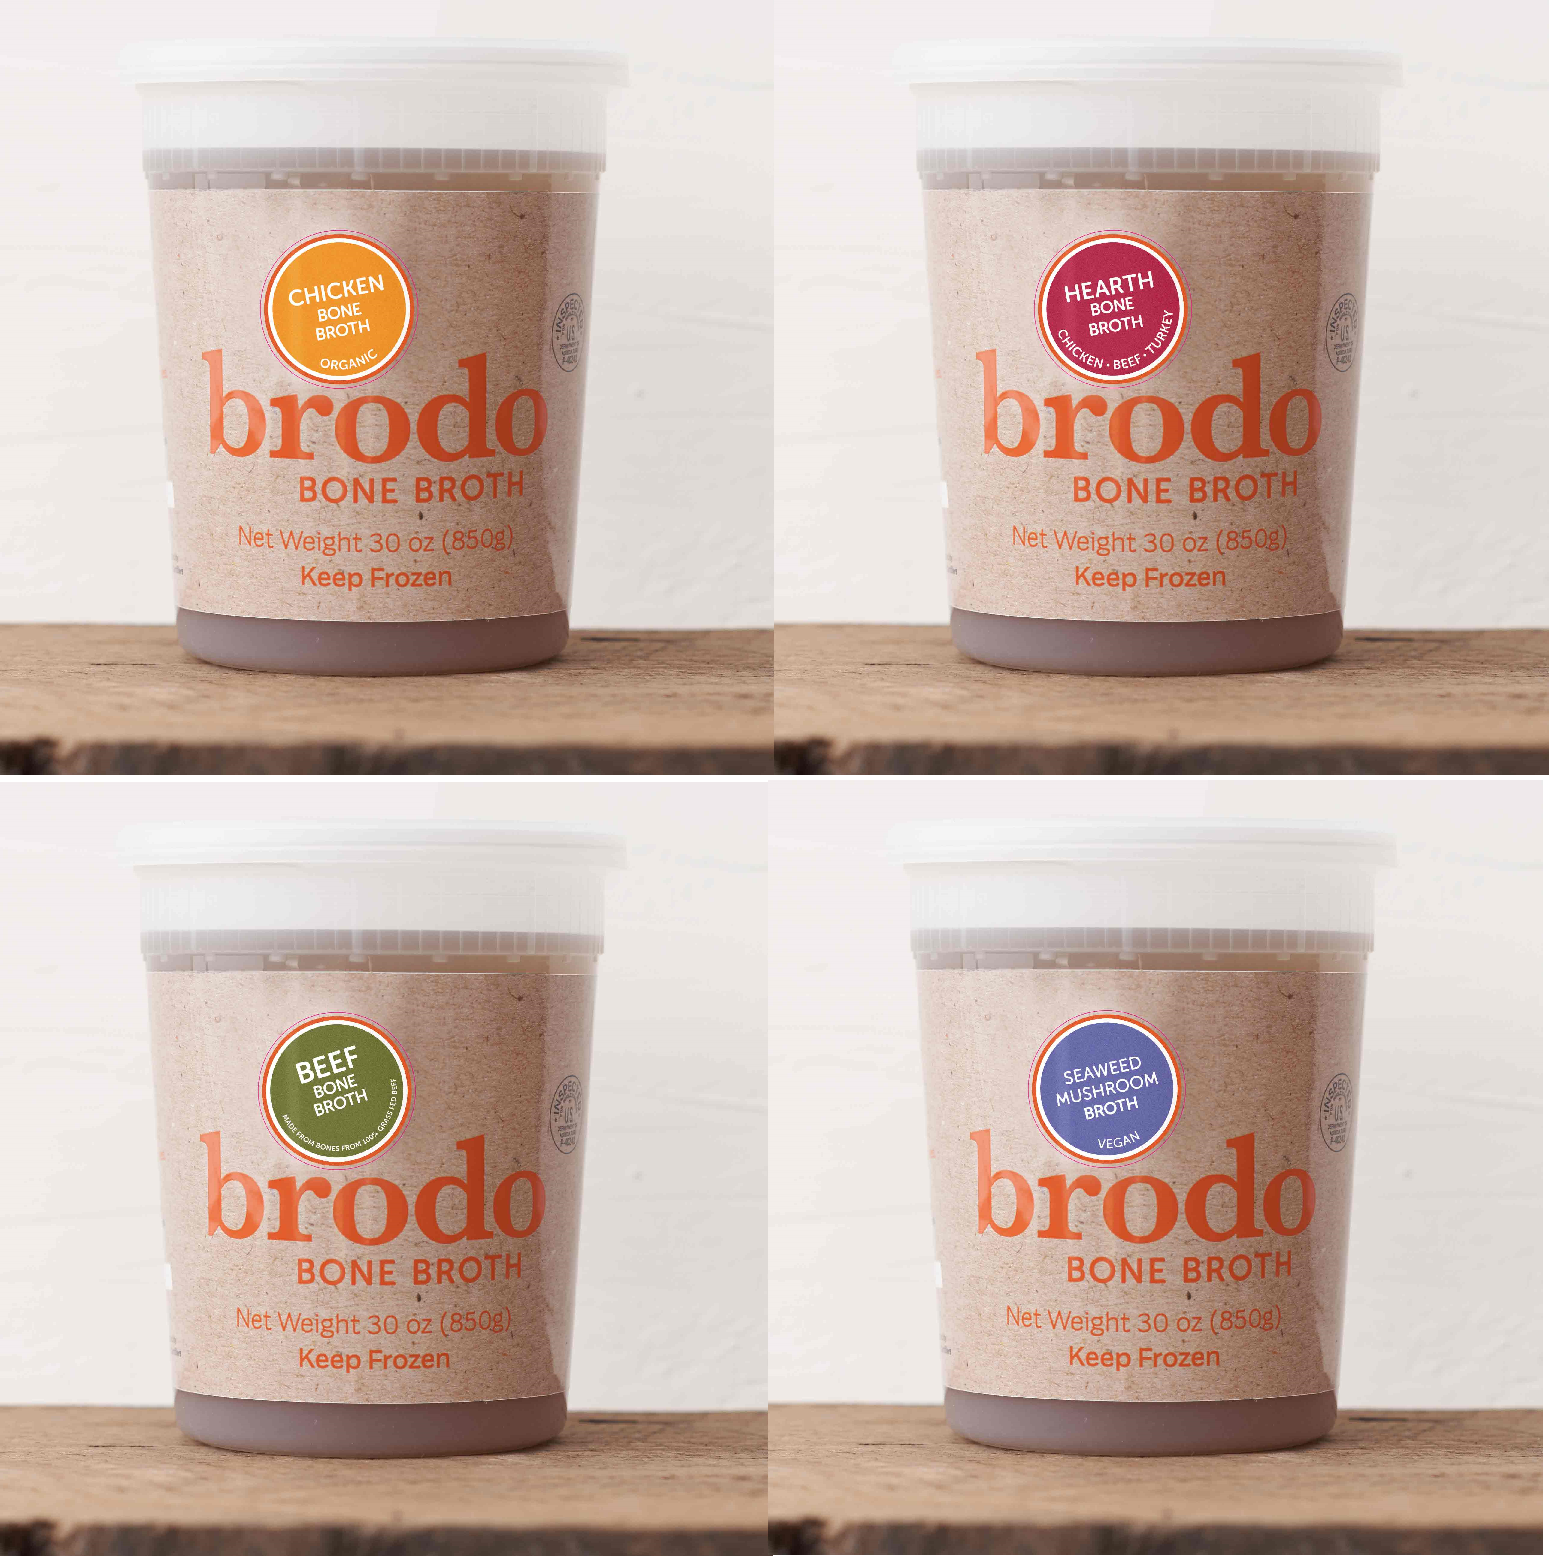 Brodo Bone Broth   Brodo combines the highest-quality ingredients with century-tested craftsmanship to create a bone broth so delicious we drink it by the cupful.